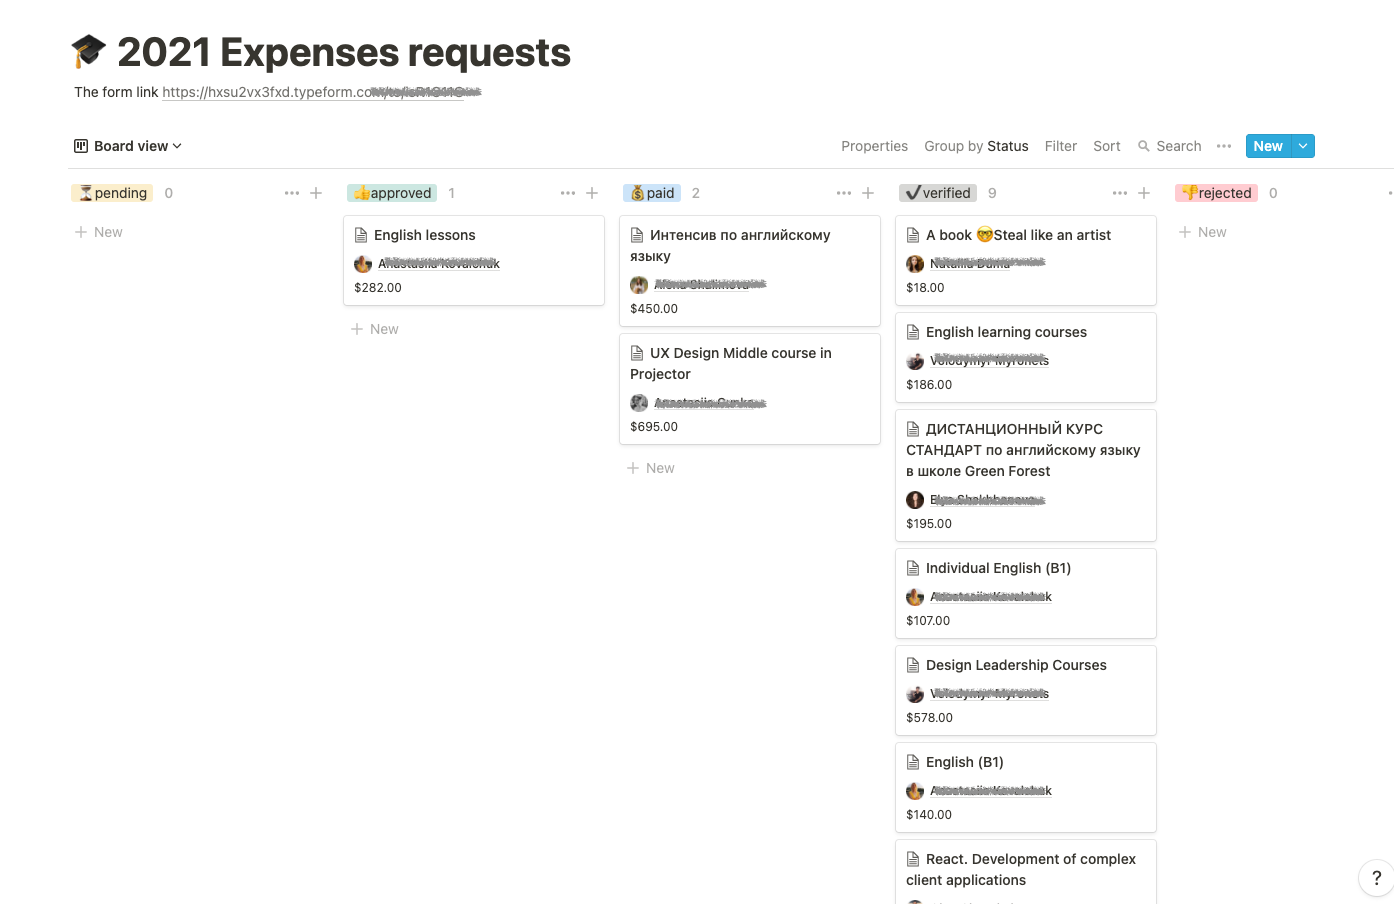 A Kanban board with the requests for education